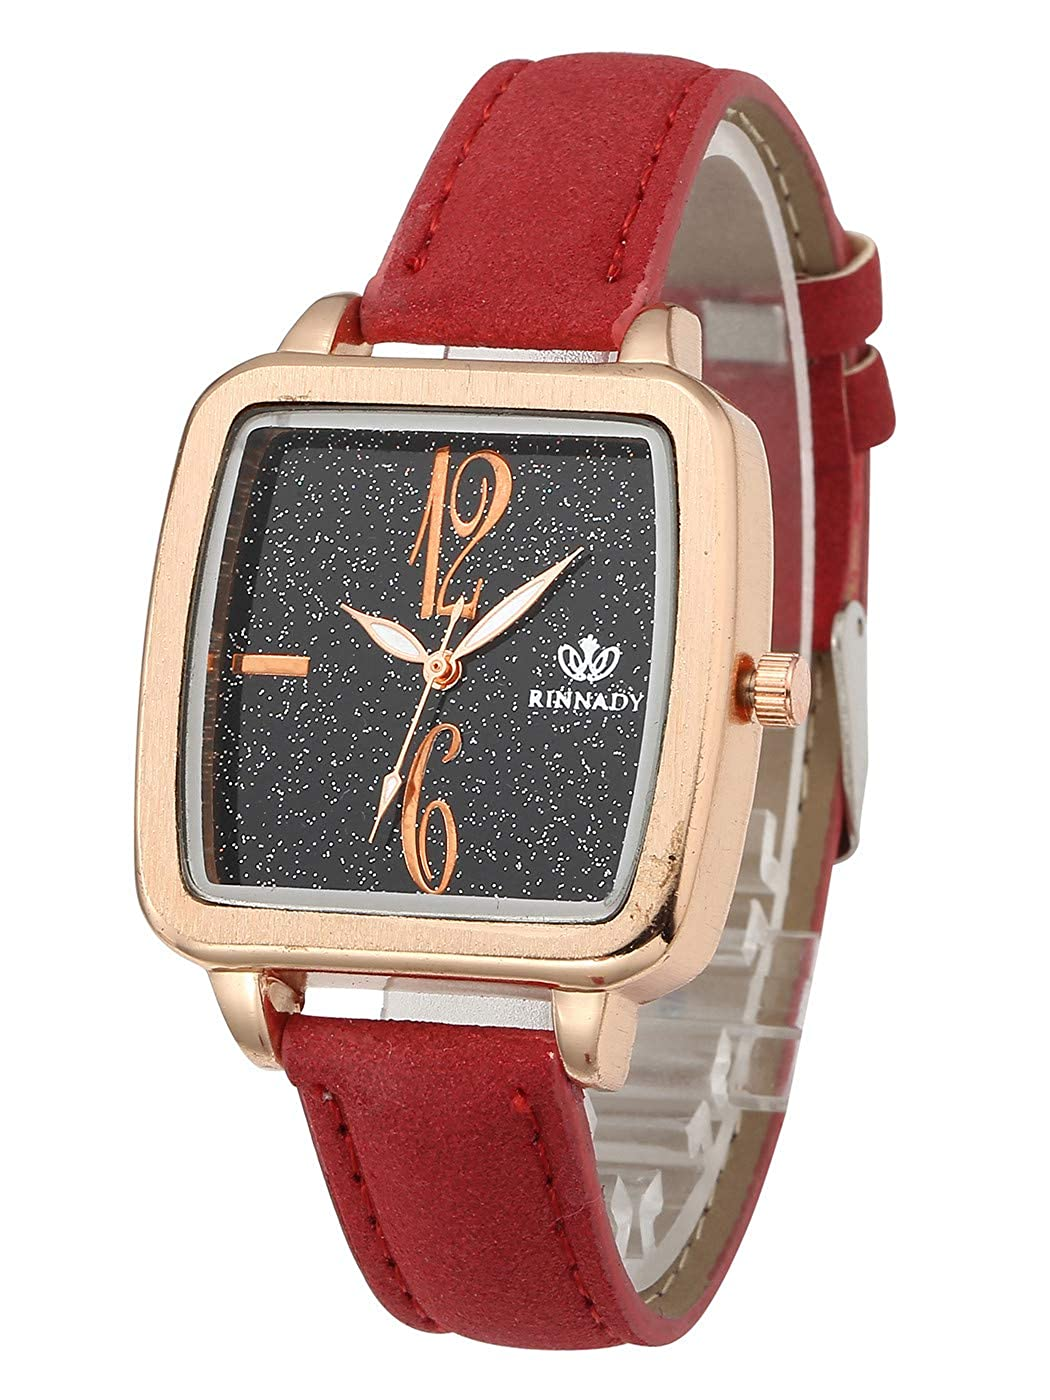 1f41406b0 Amazon.com: Top Plaza Women Watches Red Leather Band Rose Gold Square Case  Analog Quartz Dress Watches Girls Ladies Wristwatch,Arabic Numerals #2:  Watches